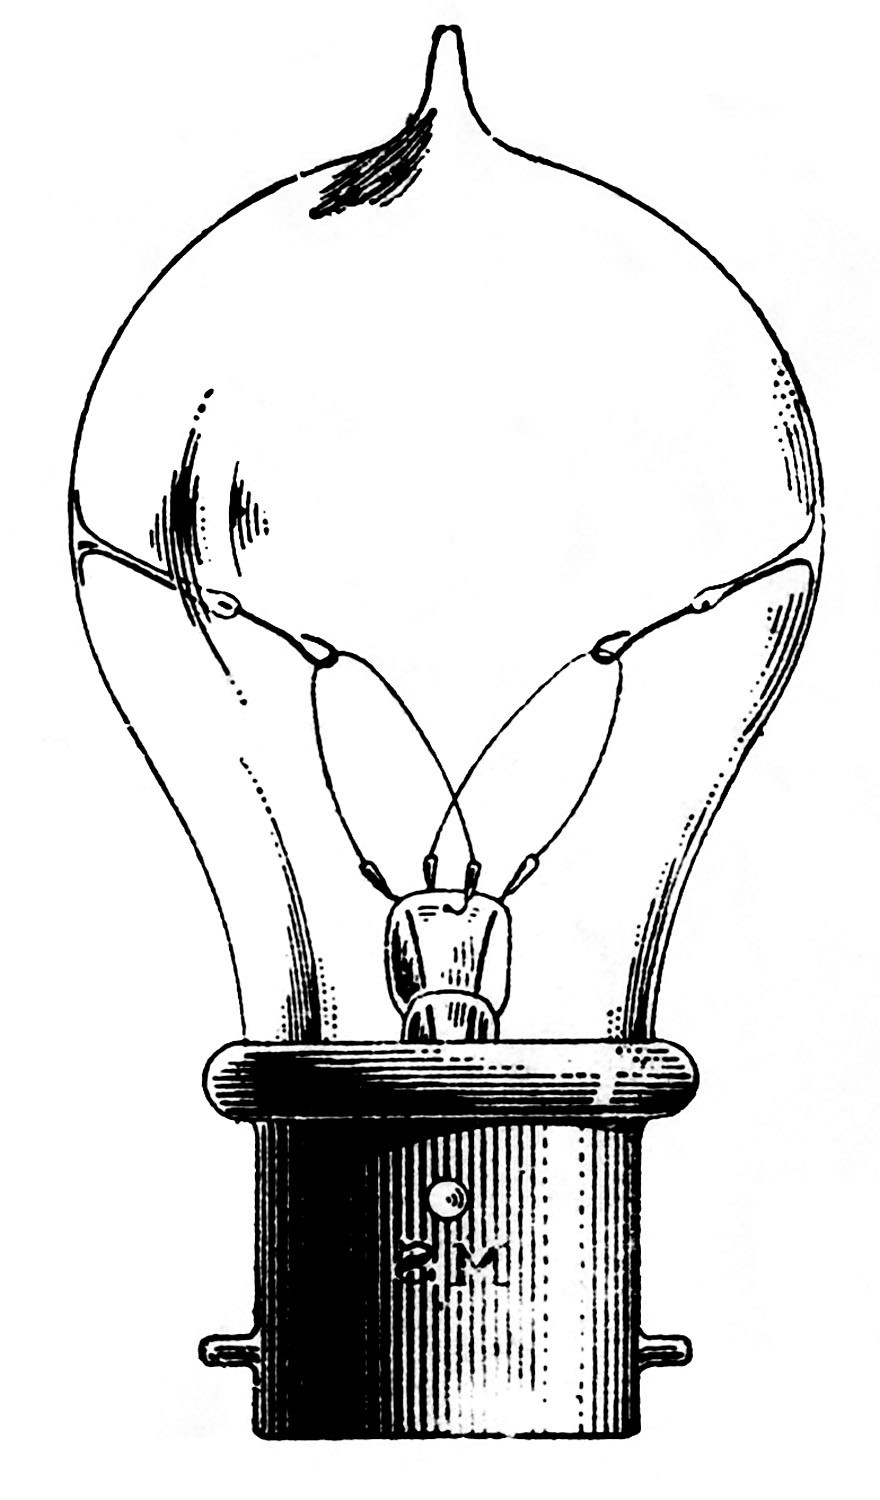 thomas edison light bulb drawing at getdrawings com